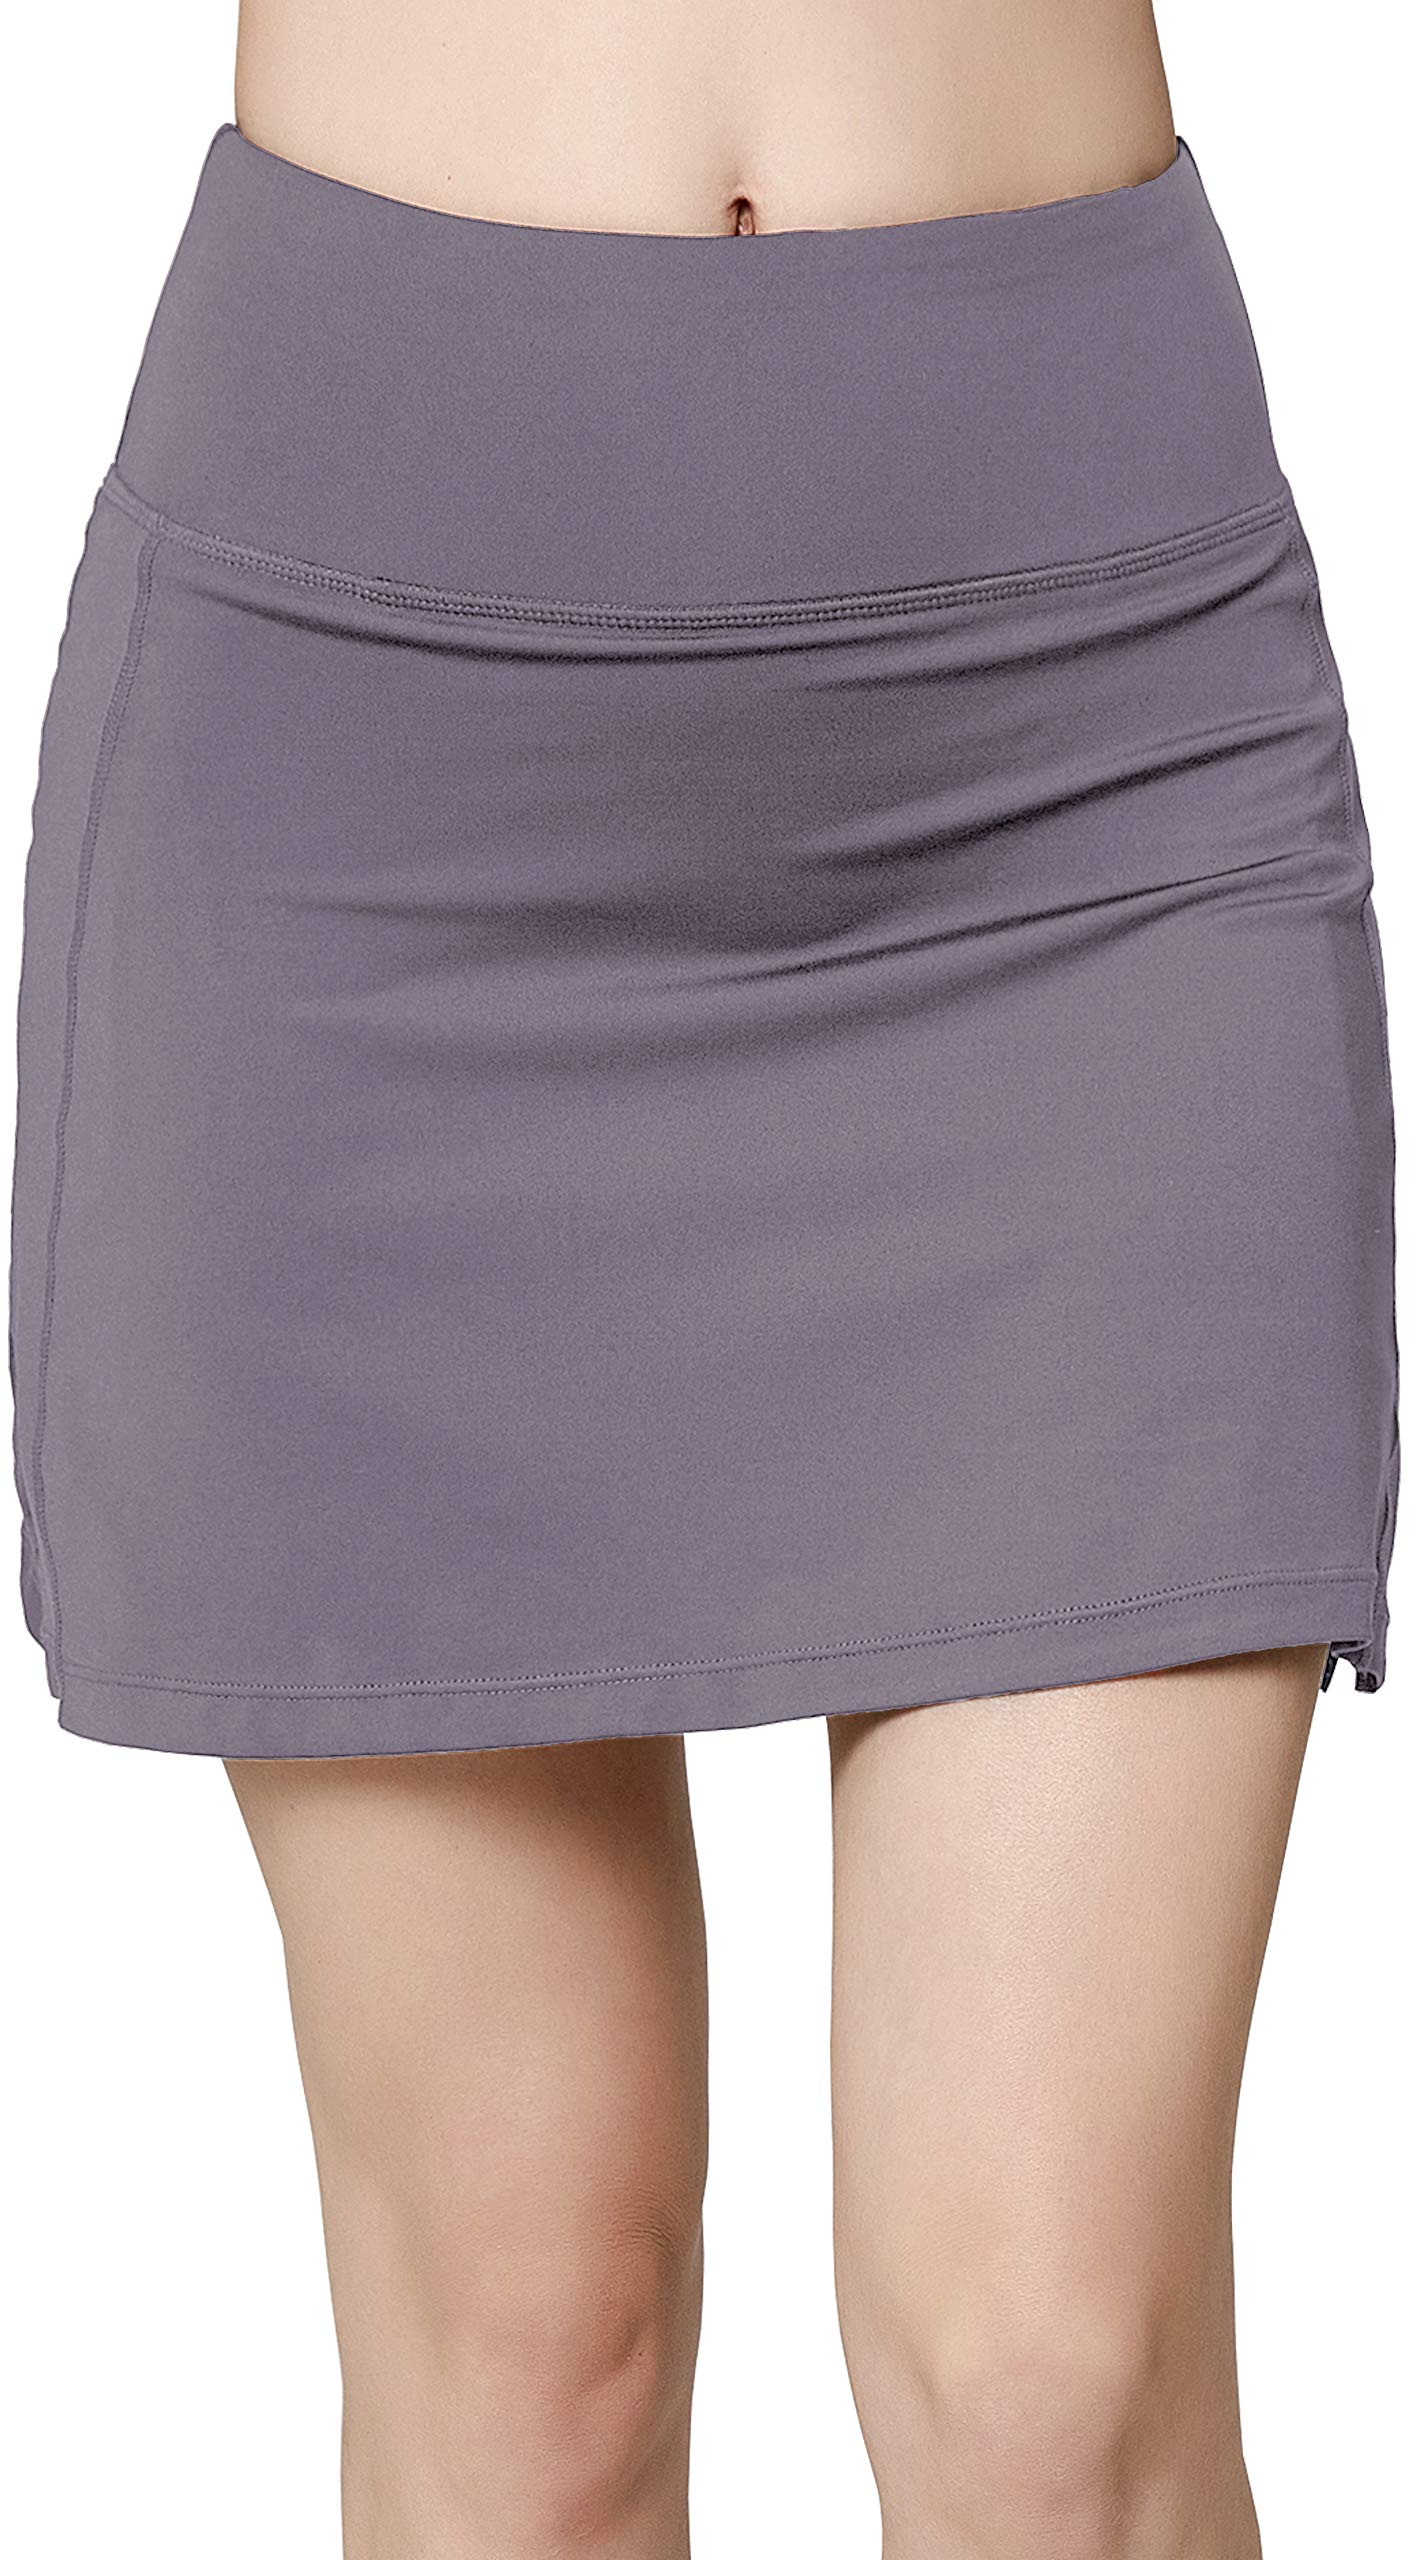 Women's Active Athletic Skirt Sports Golf Tennis Running Pockets Skort Light Grey M by Oalka